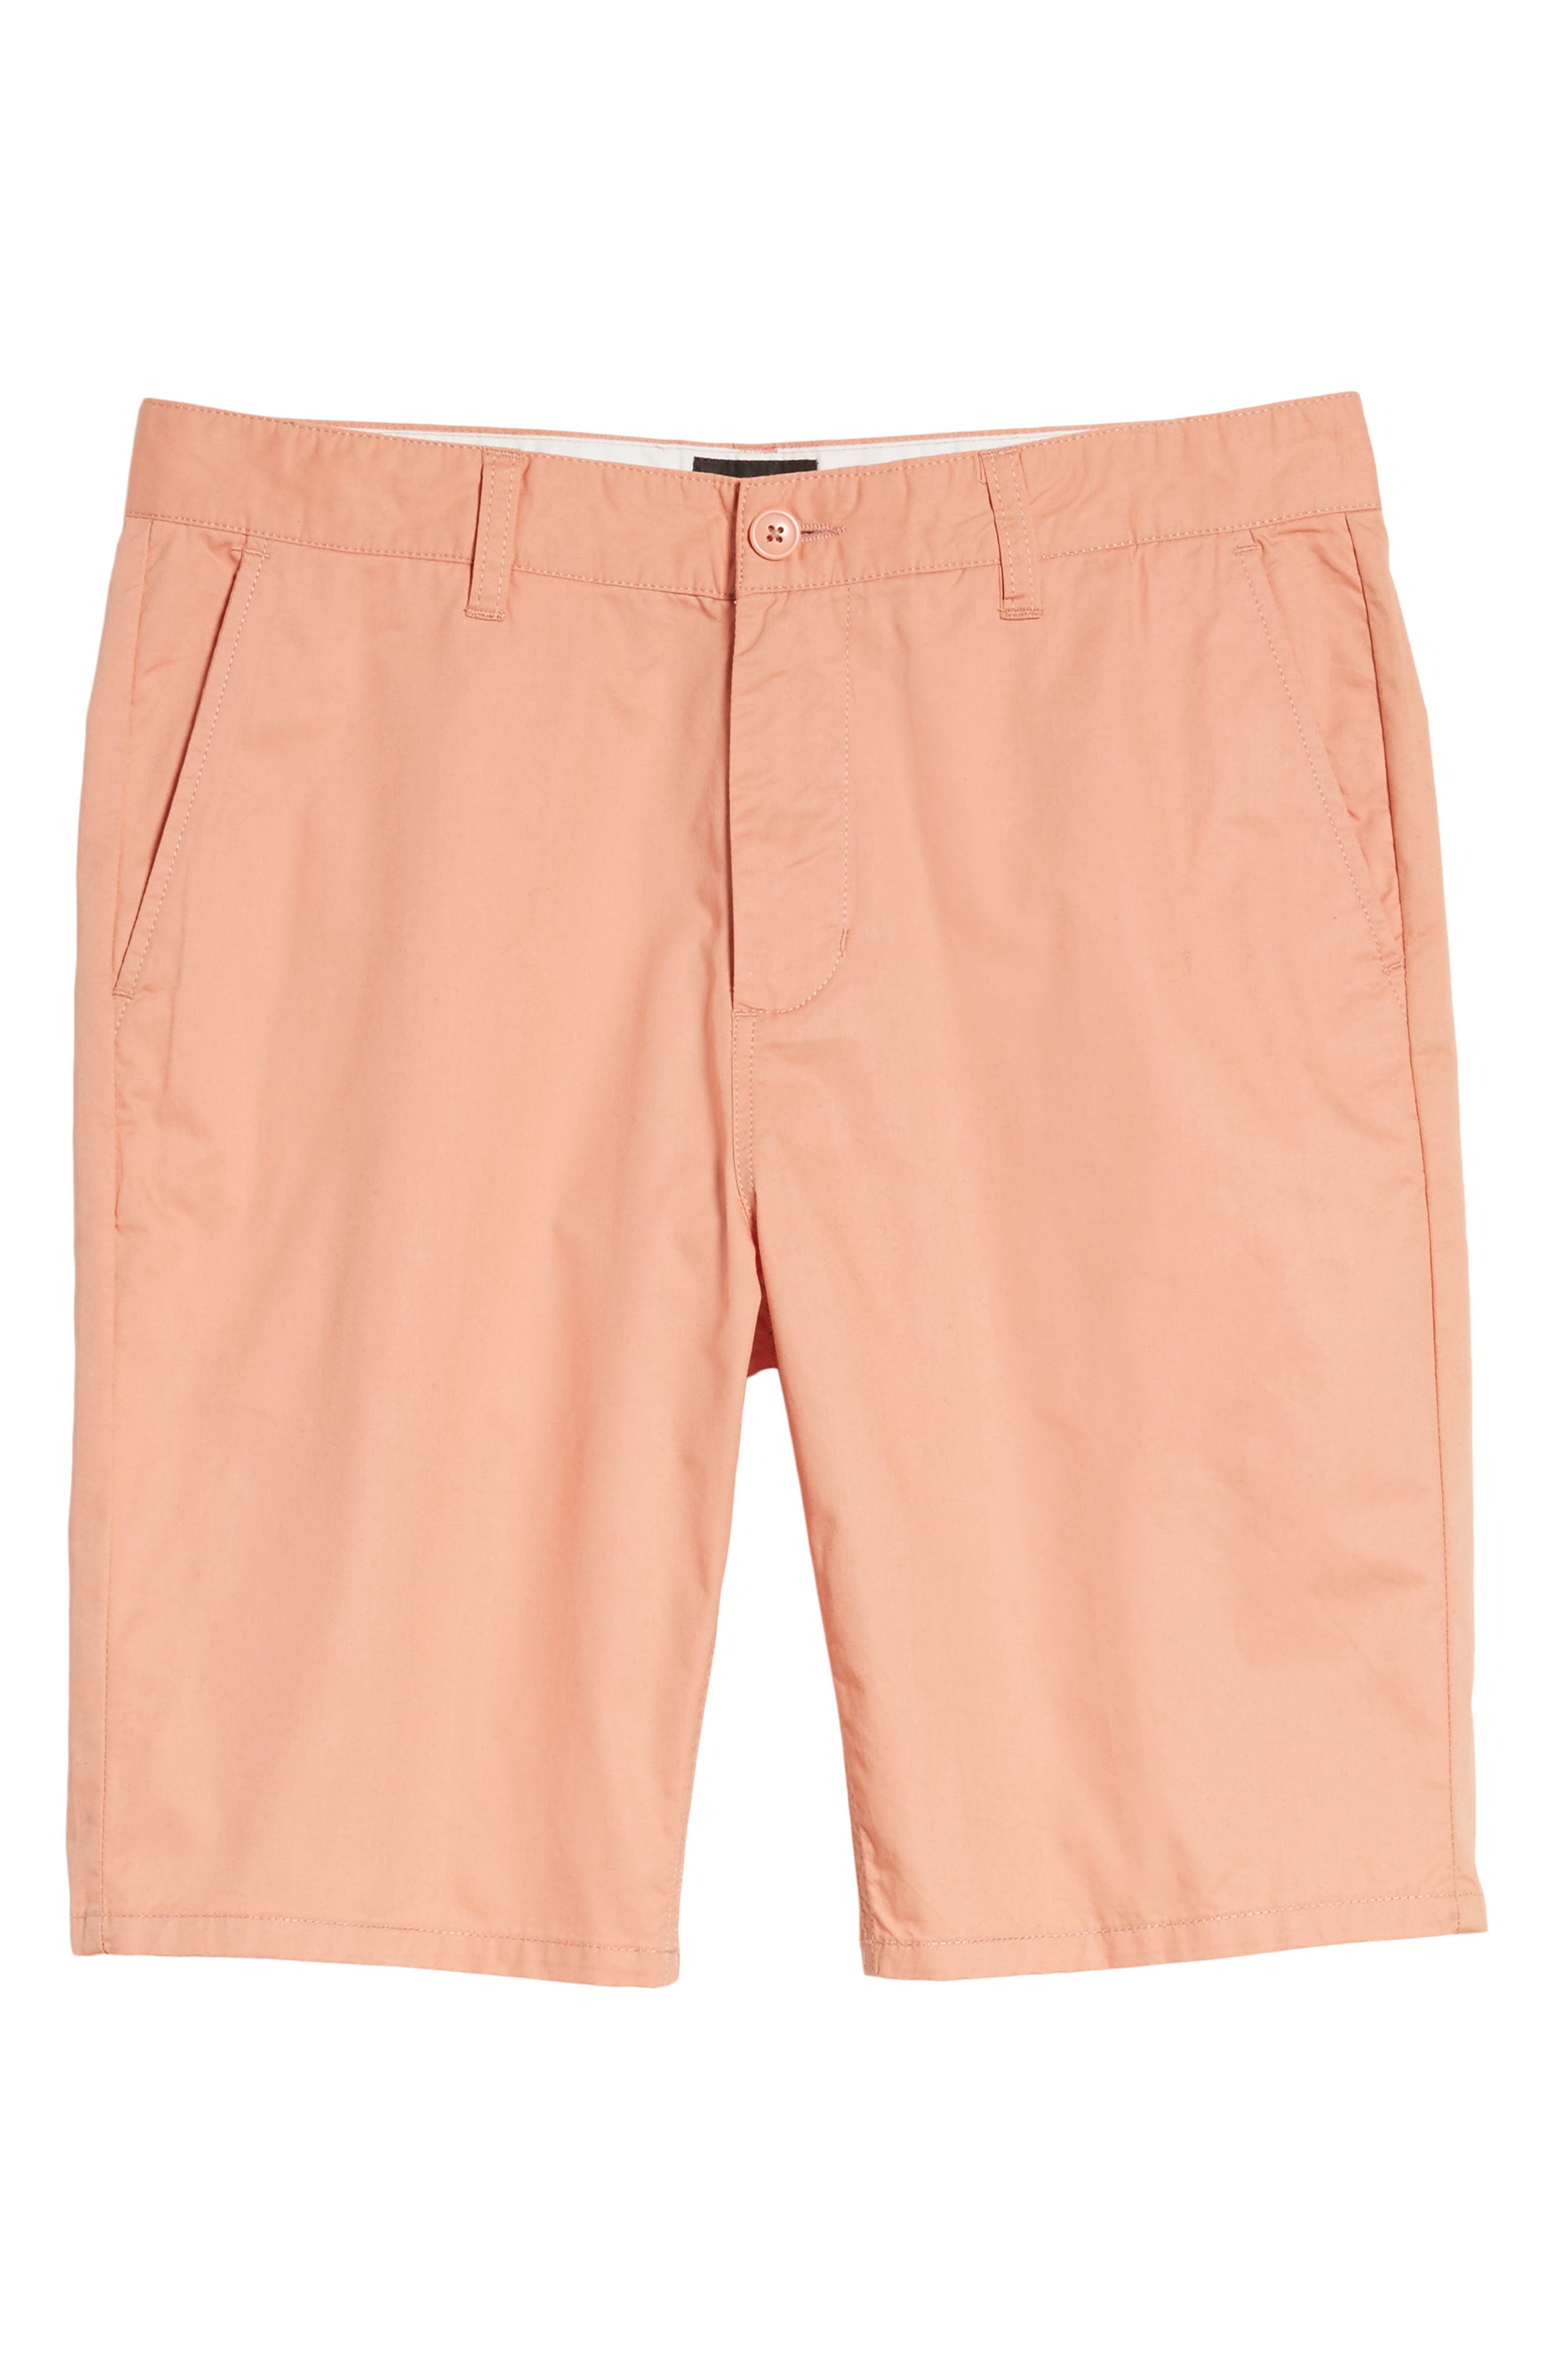 Straggler Light Shorts,                             Alternate thumbnail 6, color,                             Dusty Rose